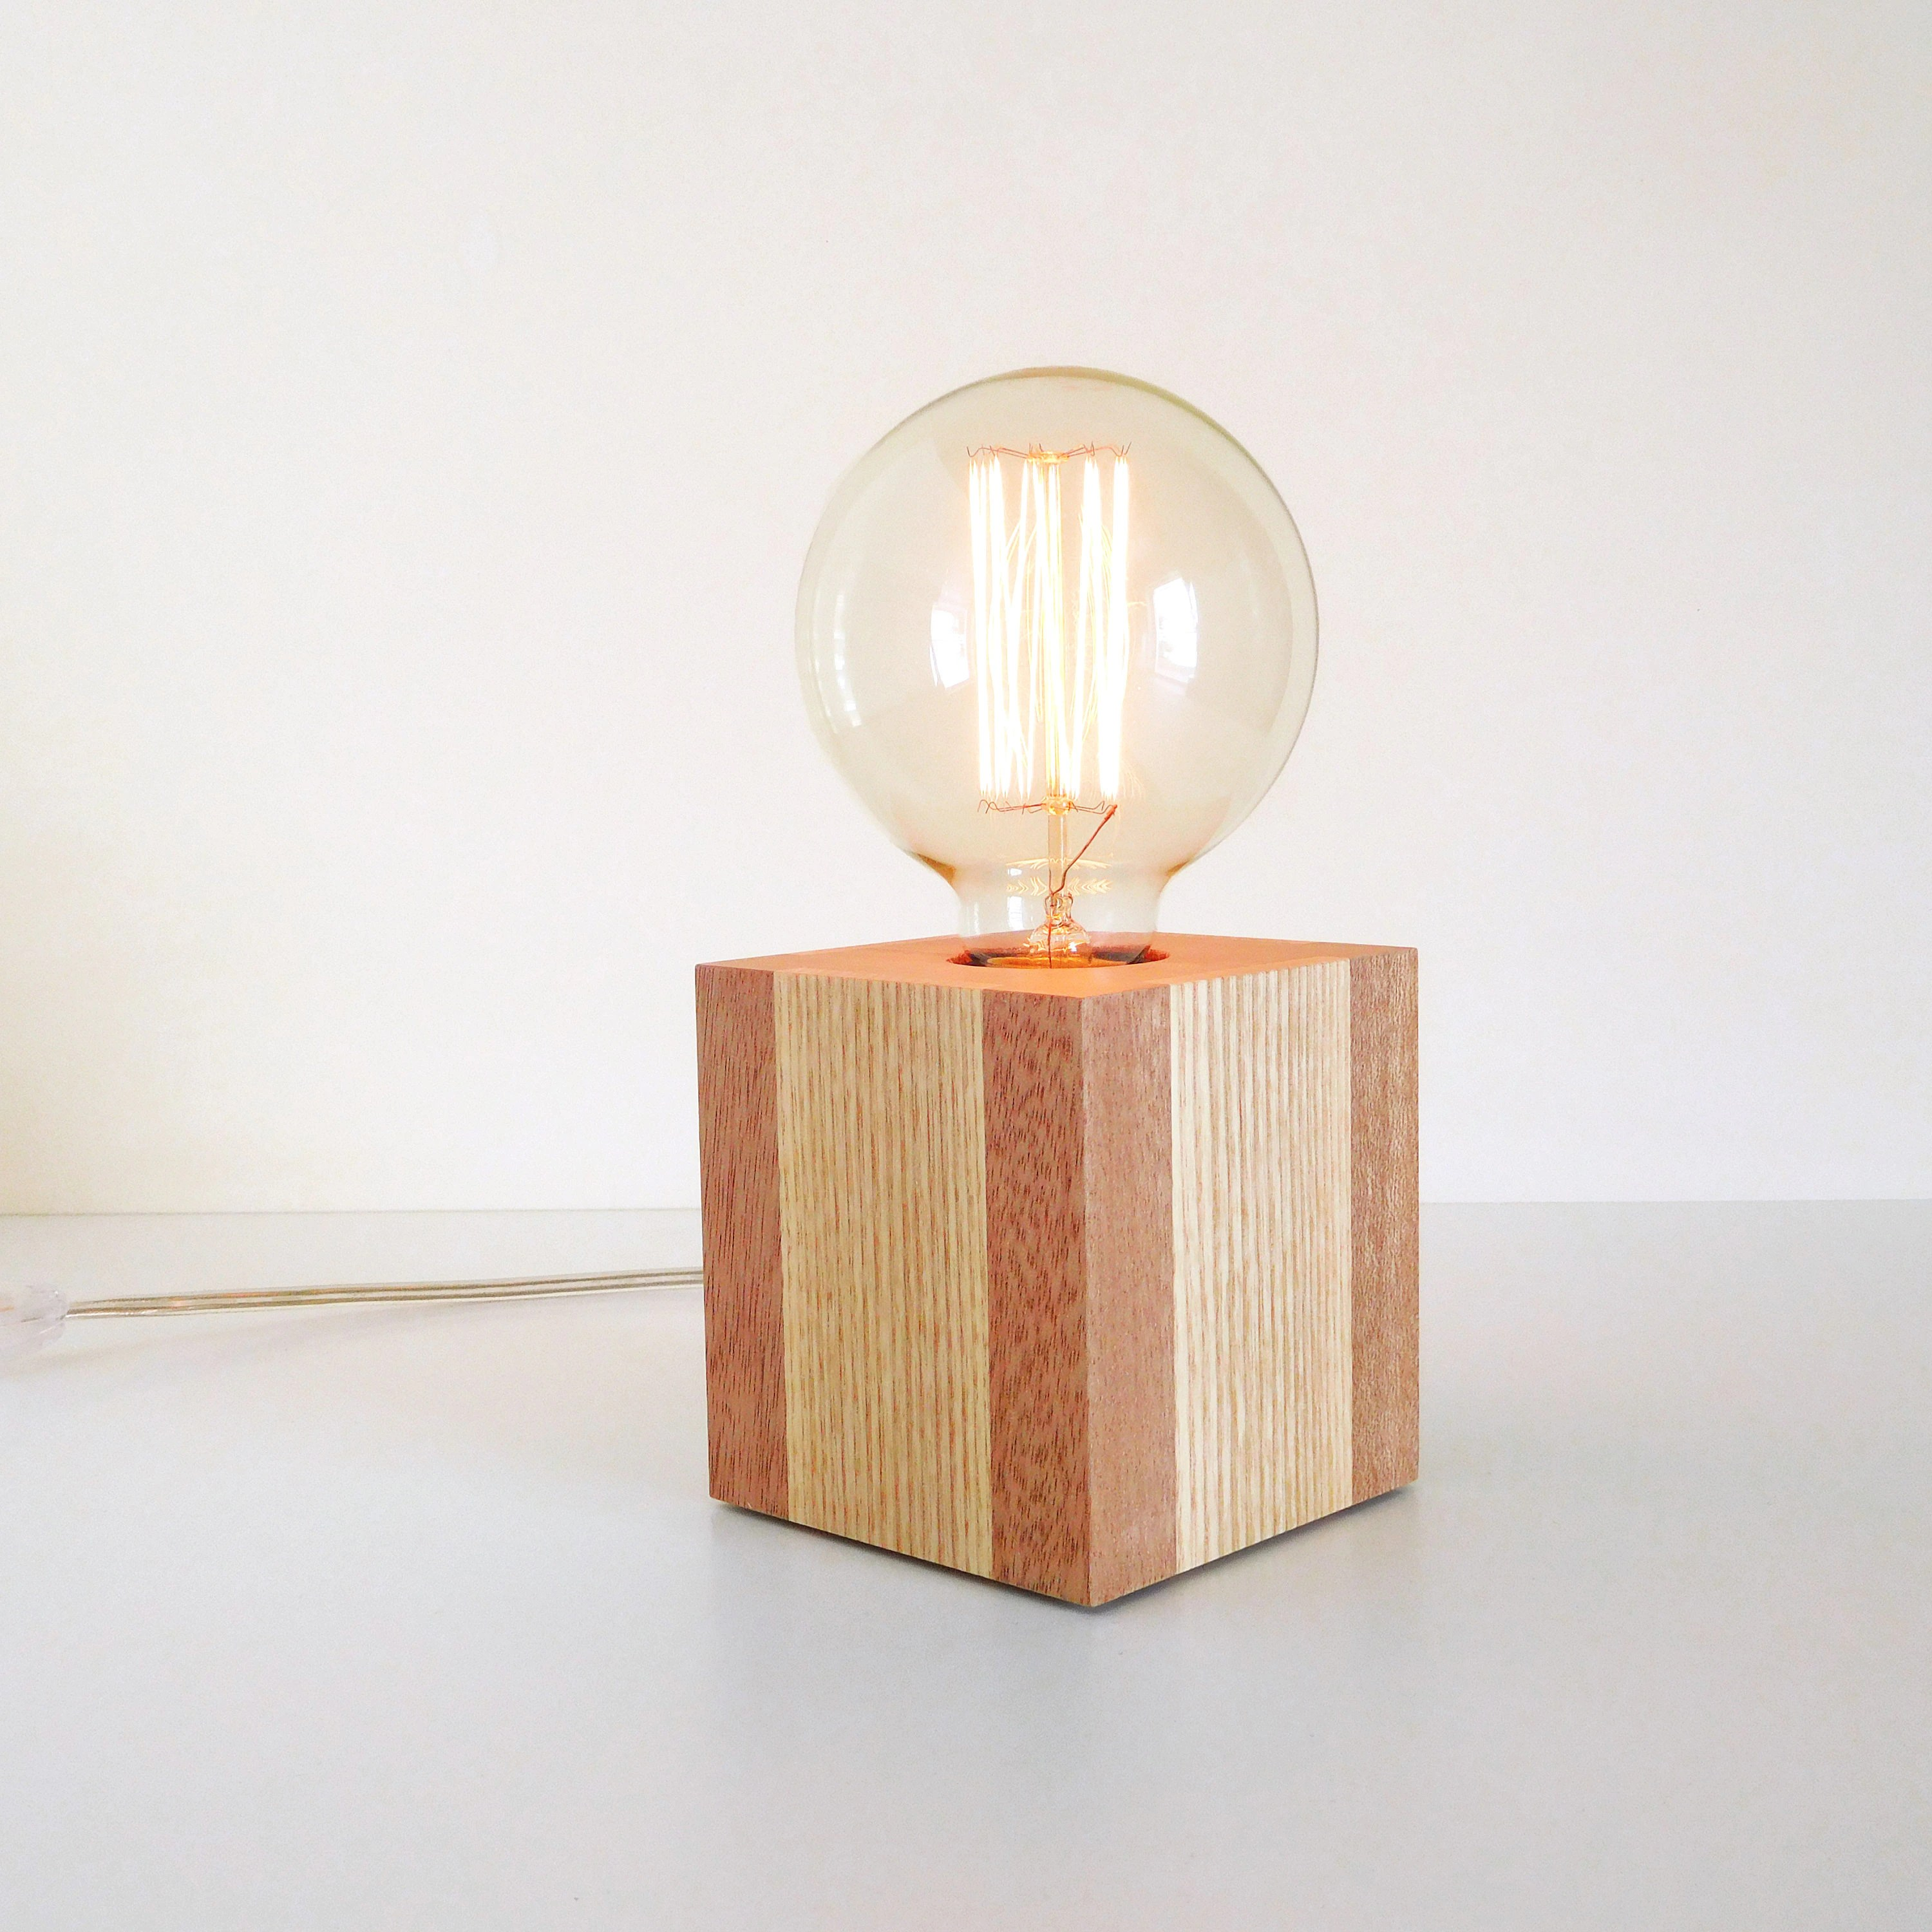 Table Lamp Base Wood Table Lamp Base Small Cube Edison Bulb Lamp Dimmable Modern Lighting Decorative Living Room Lamps Mens Home Decor Birthday Gift Ideas